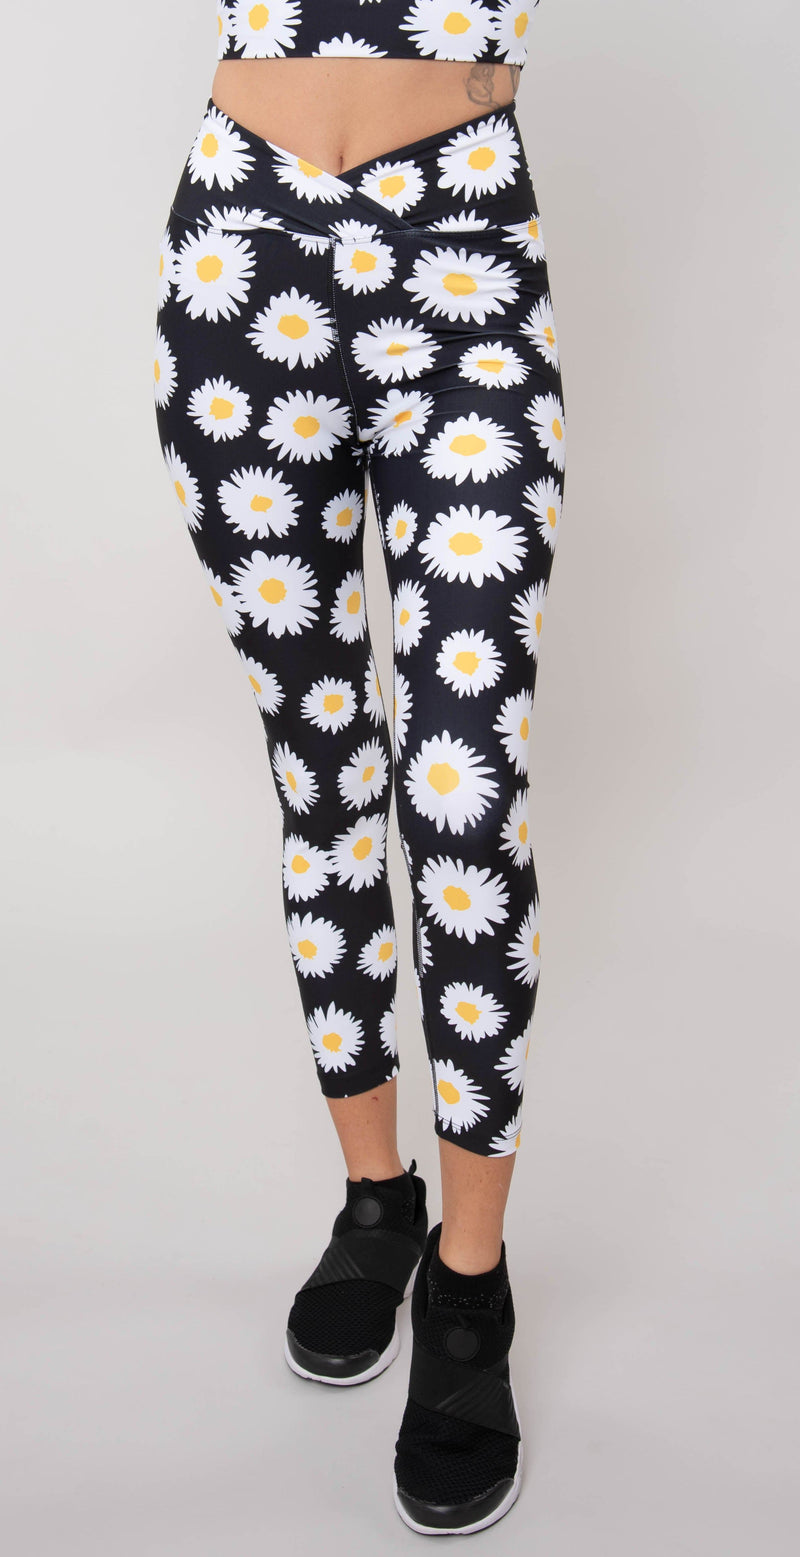 Year of Ours Daisy Veronica Legging Daisy Black